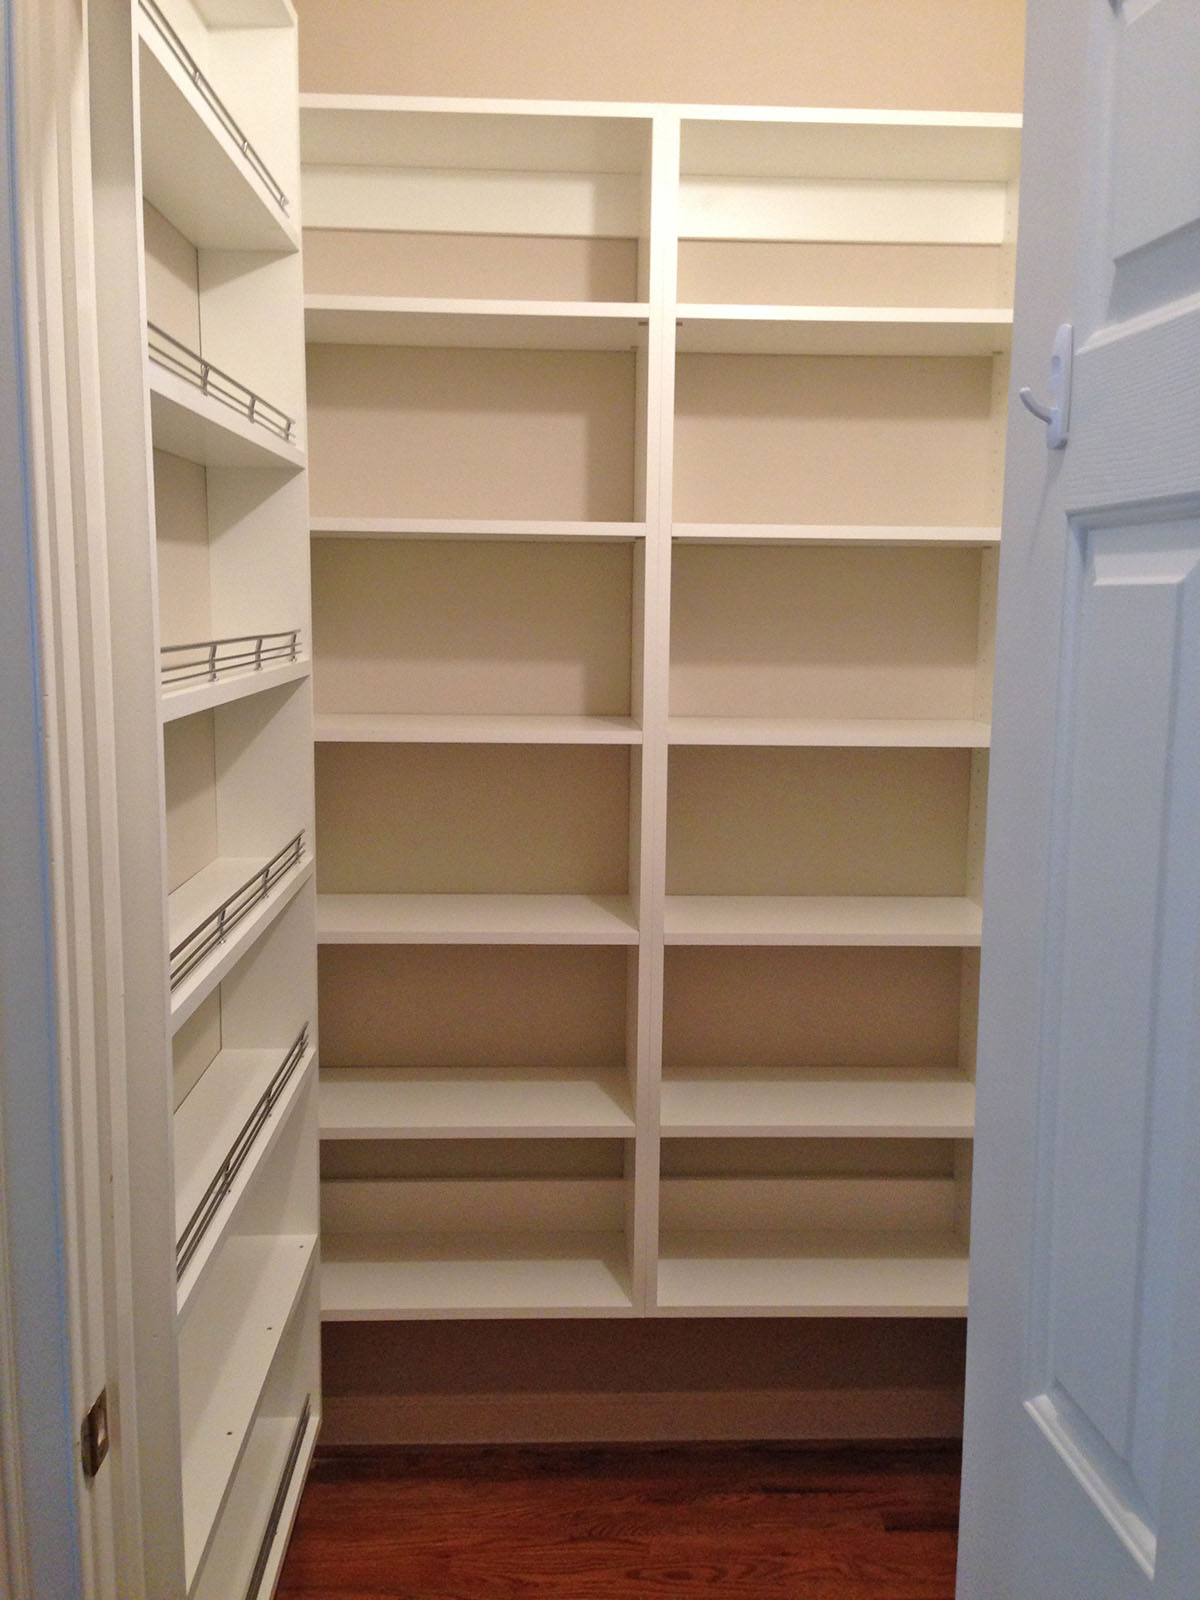 content larder cupboard pantries pantrys left howley tom pantry features kitchen cupboards